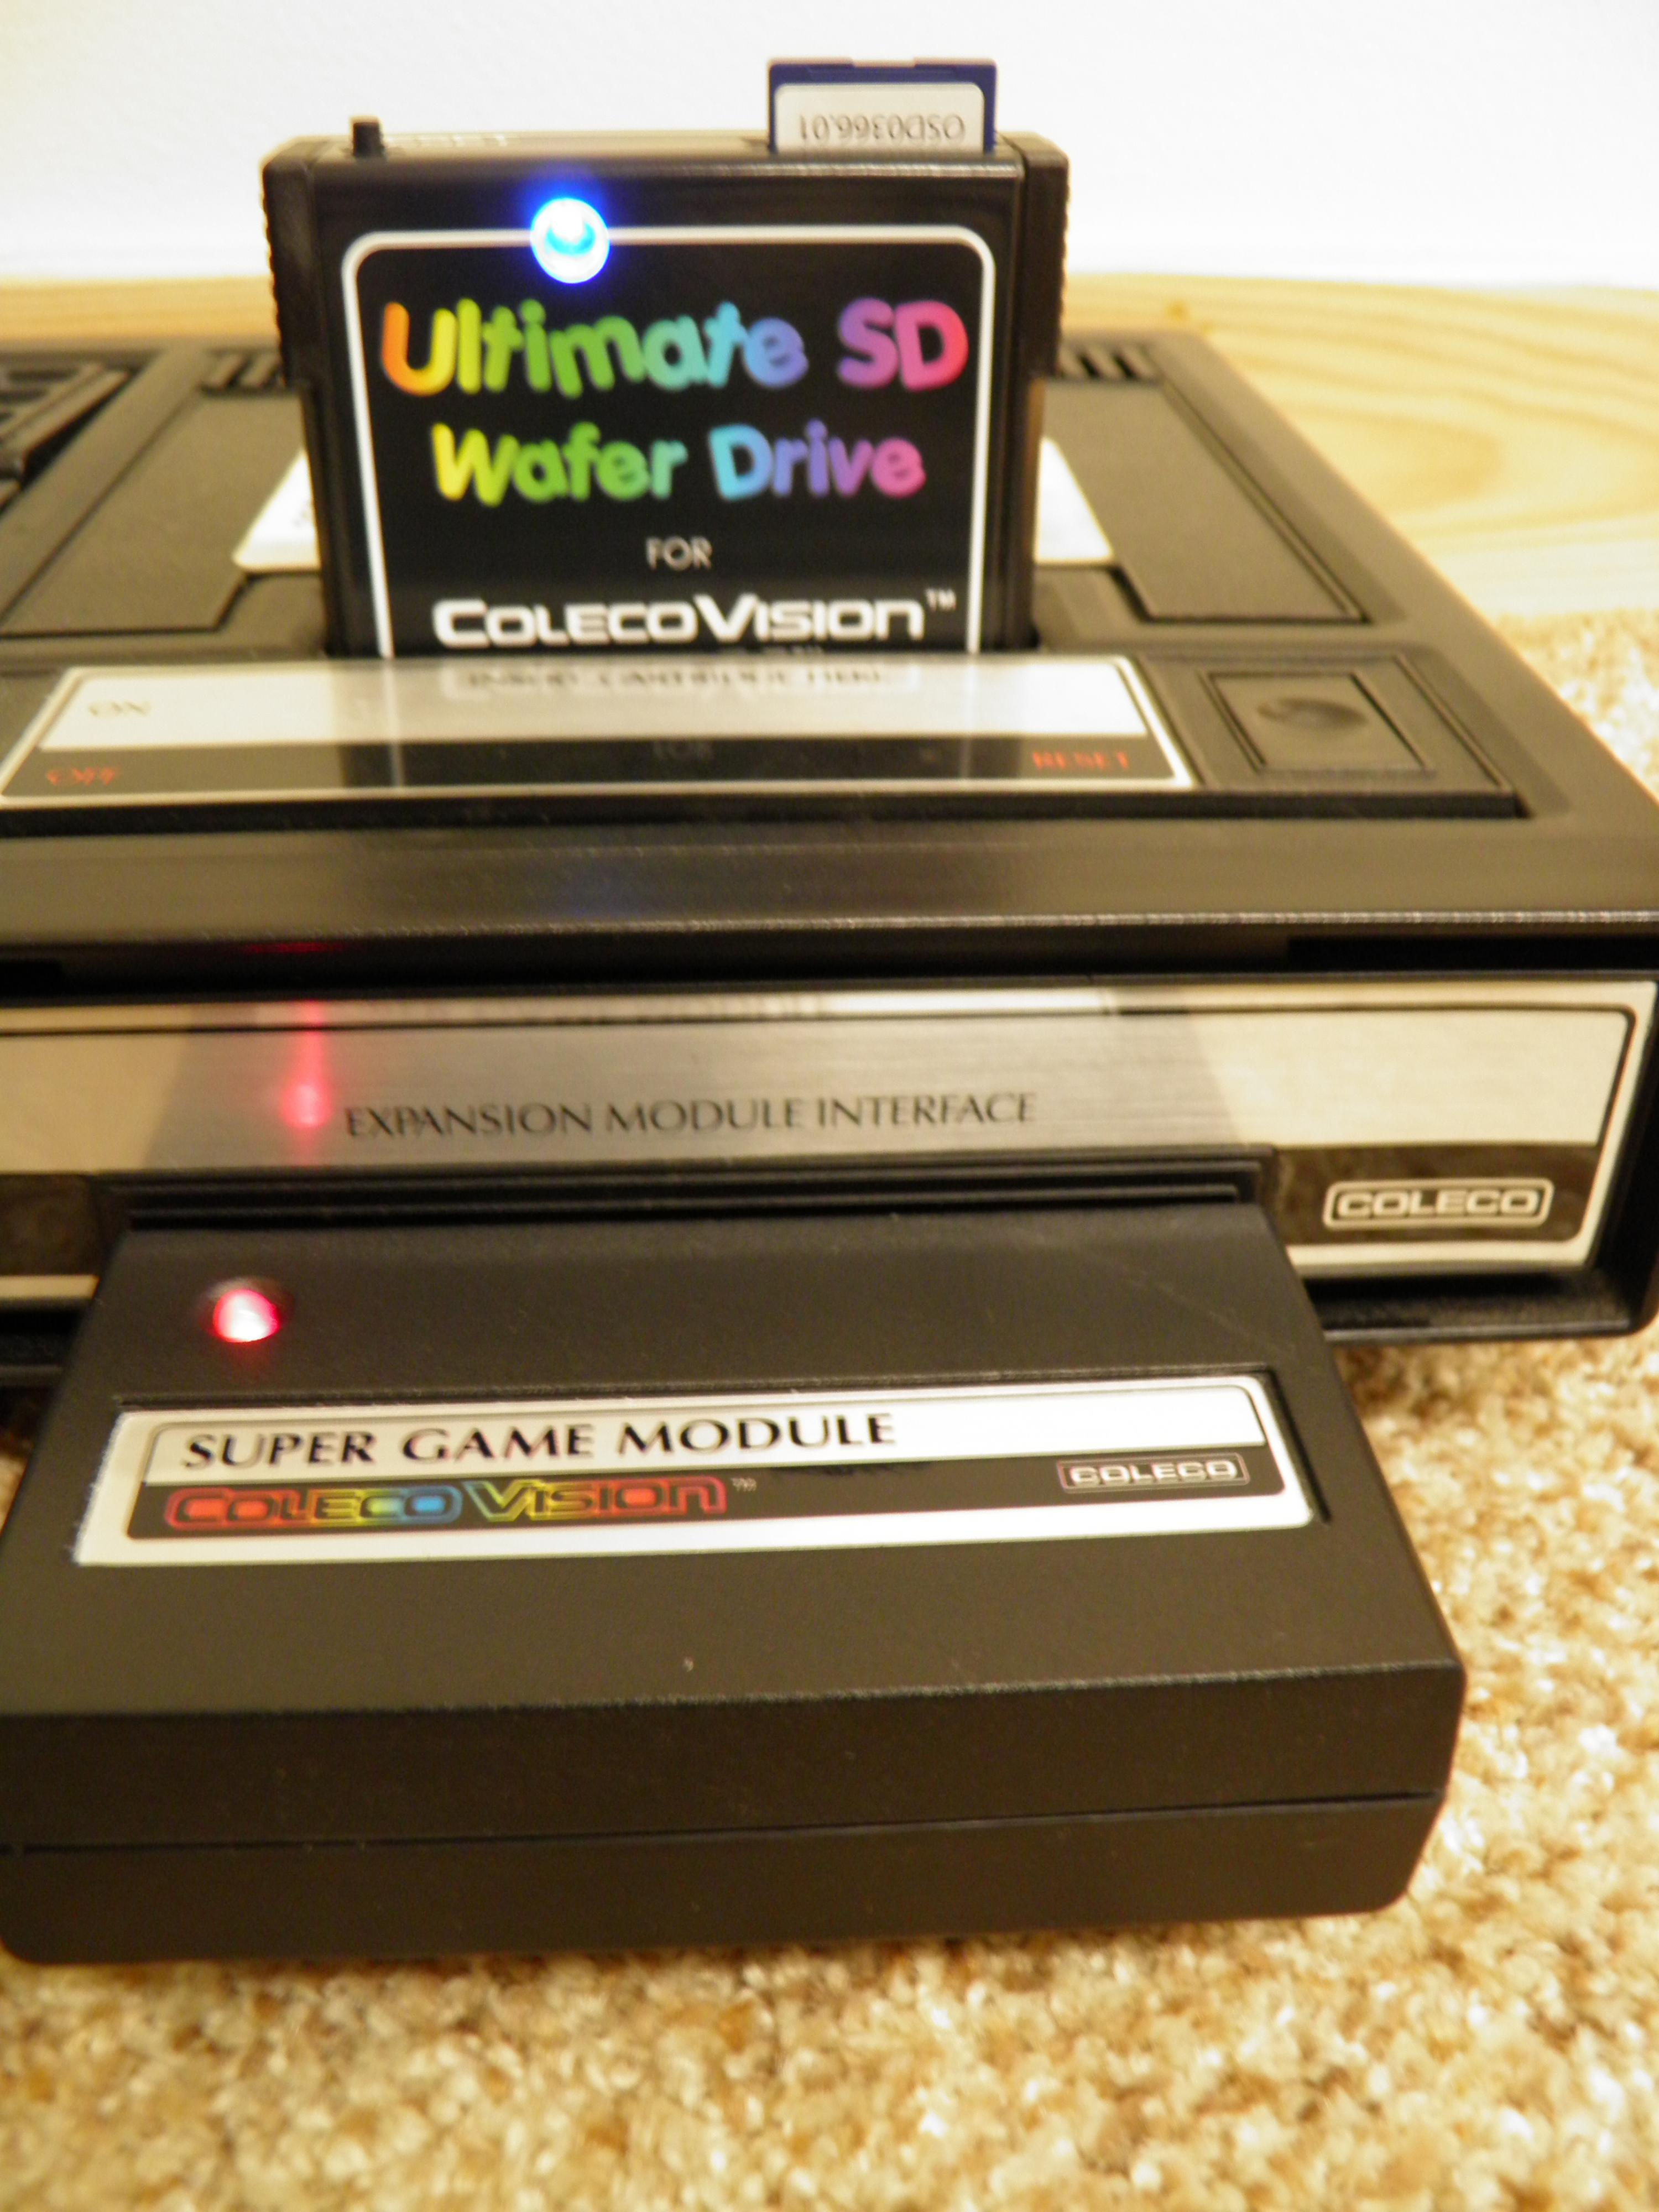 ColecoVision/ADAM Ultimate SD Wafer Drive (Up to 32GB of